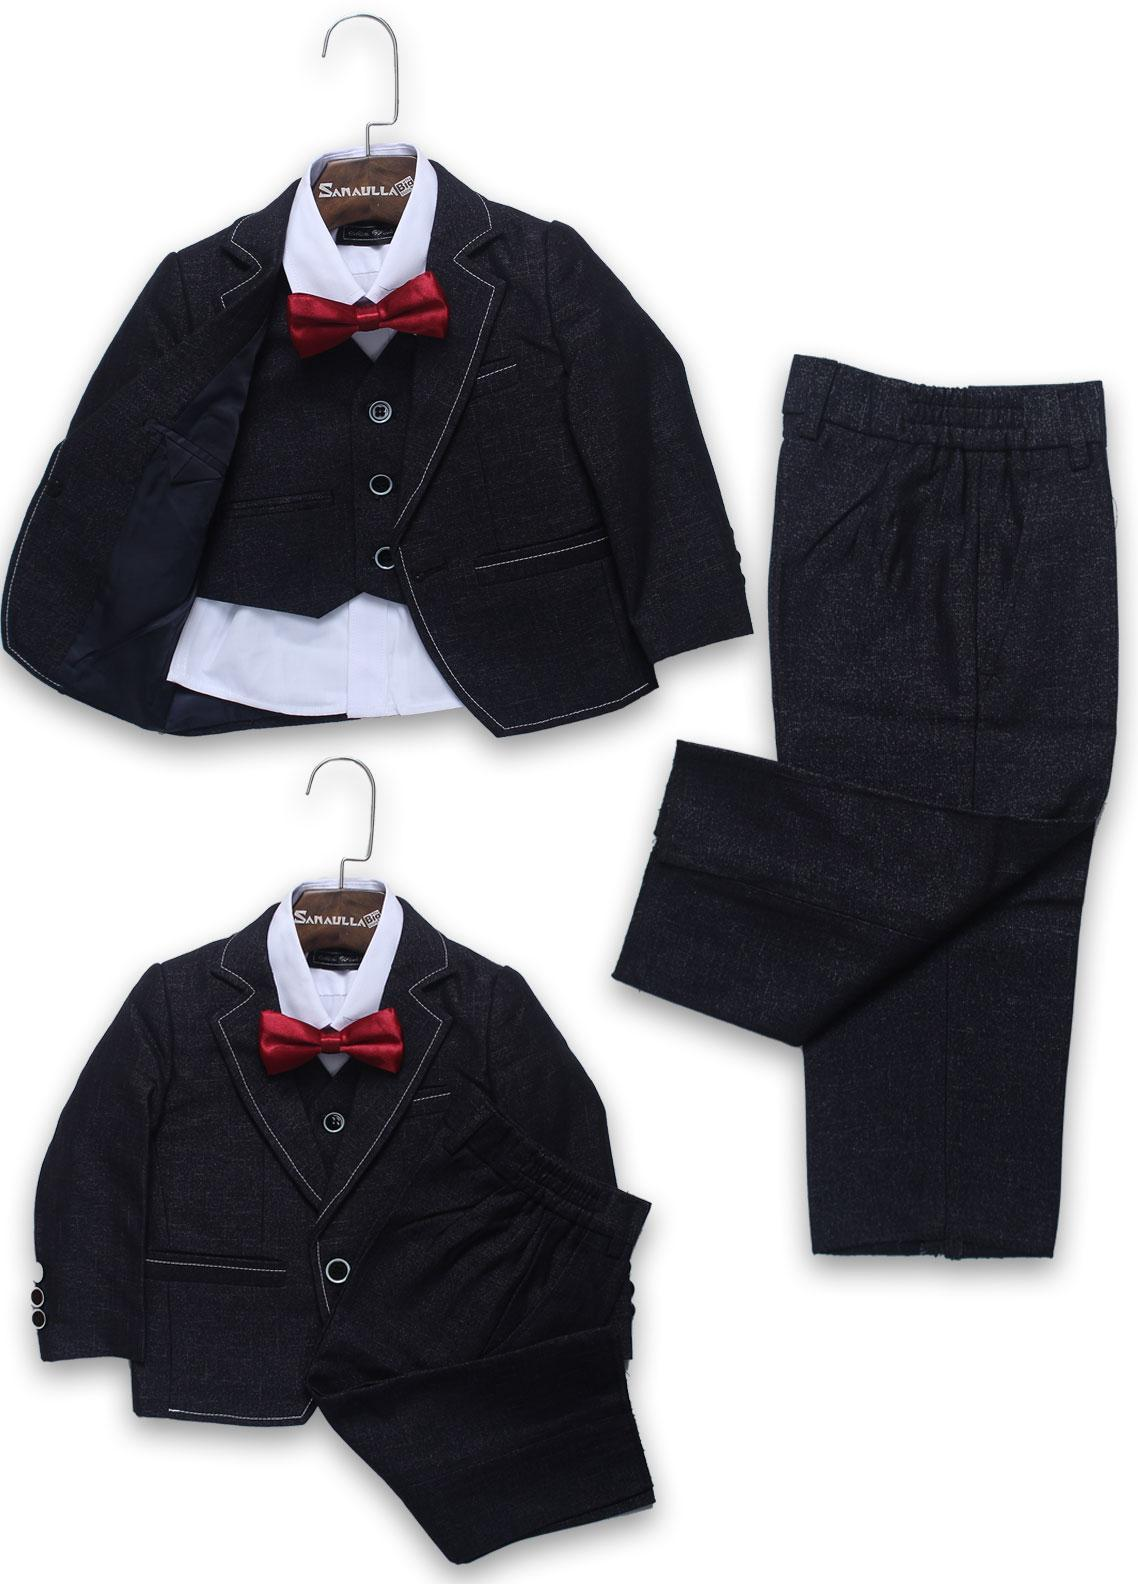 Sanaulla Exclusive Range Cotton Formal Boys Coat Suit -  A 962 Blue